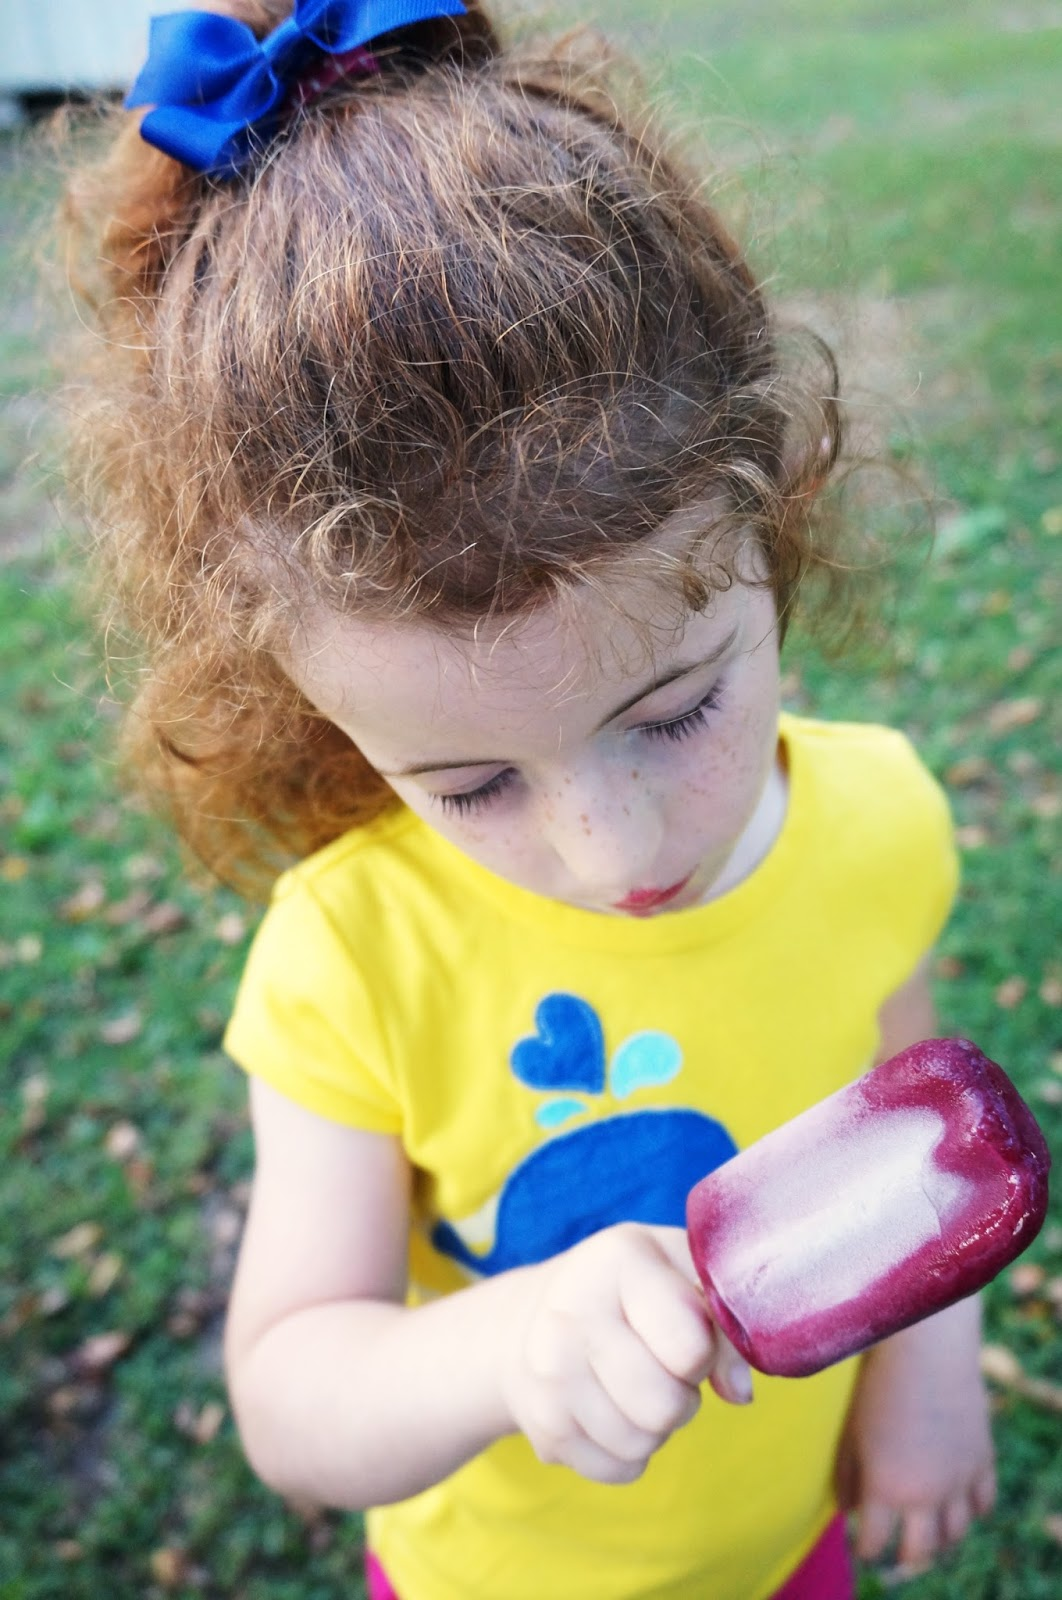 Popular North Carolina blogger Rebecca Lately shares three healthy snack ideas for kids. Click here to read about the snacks her three kids love!